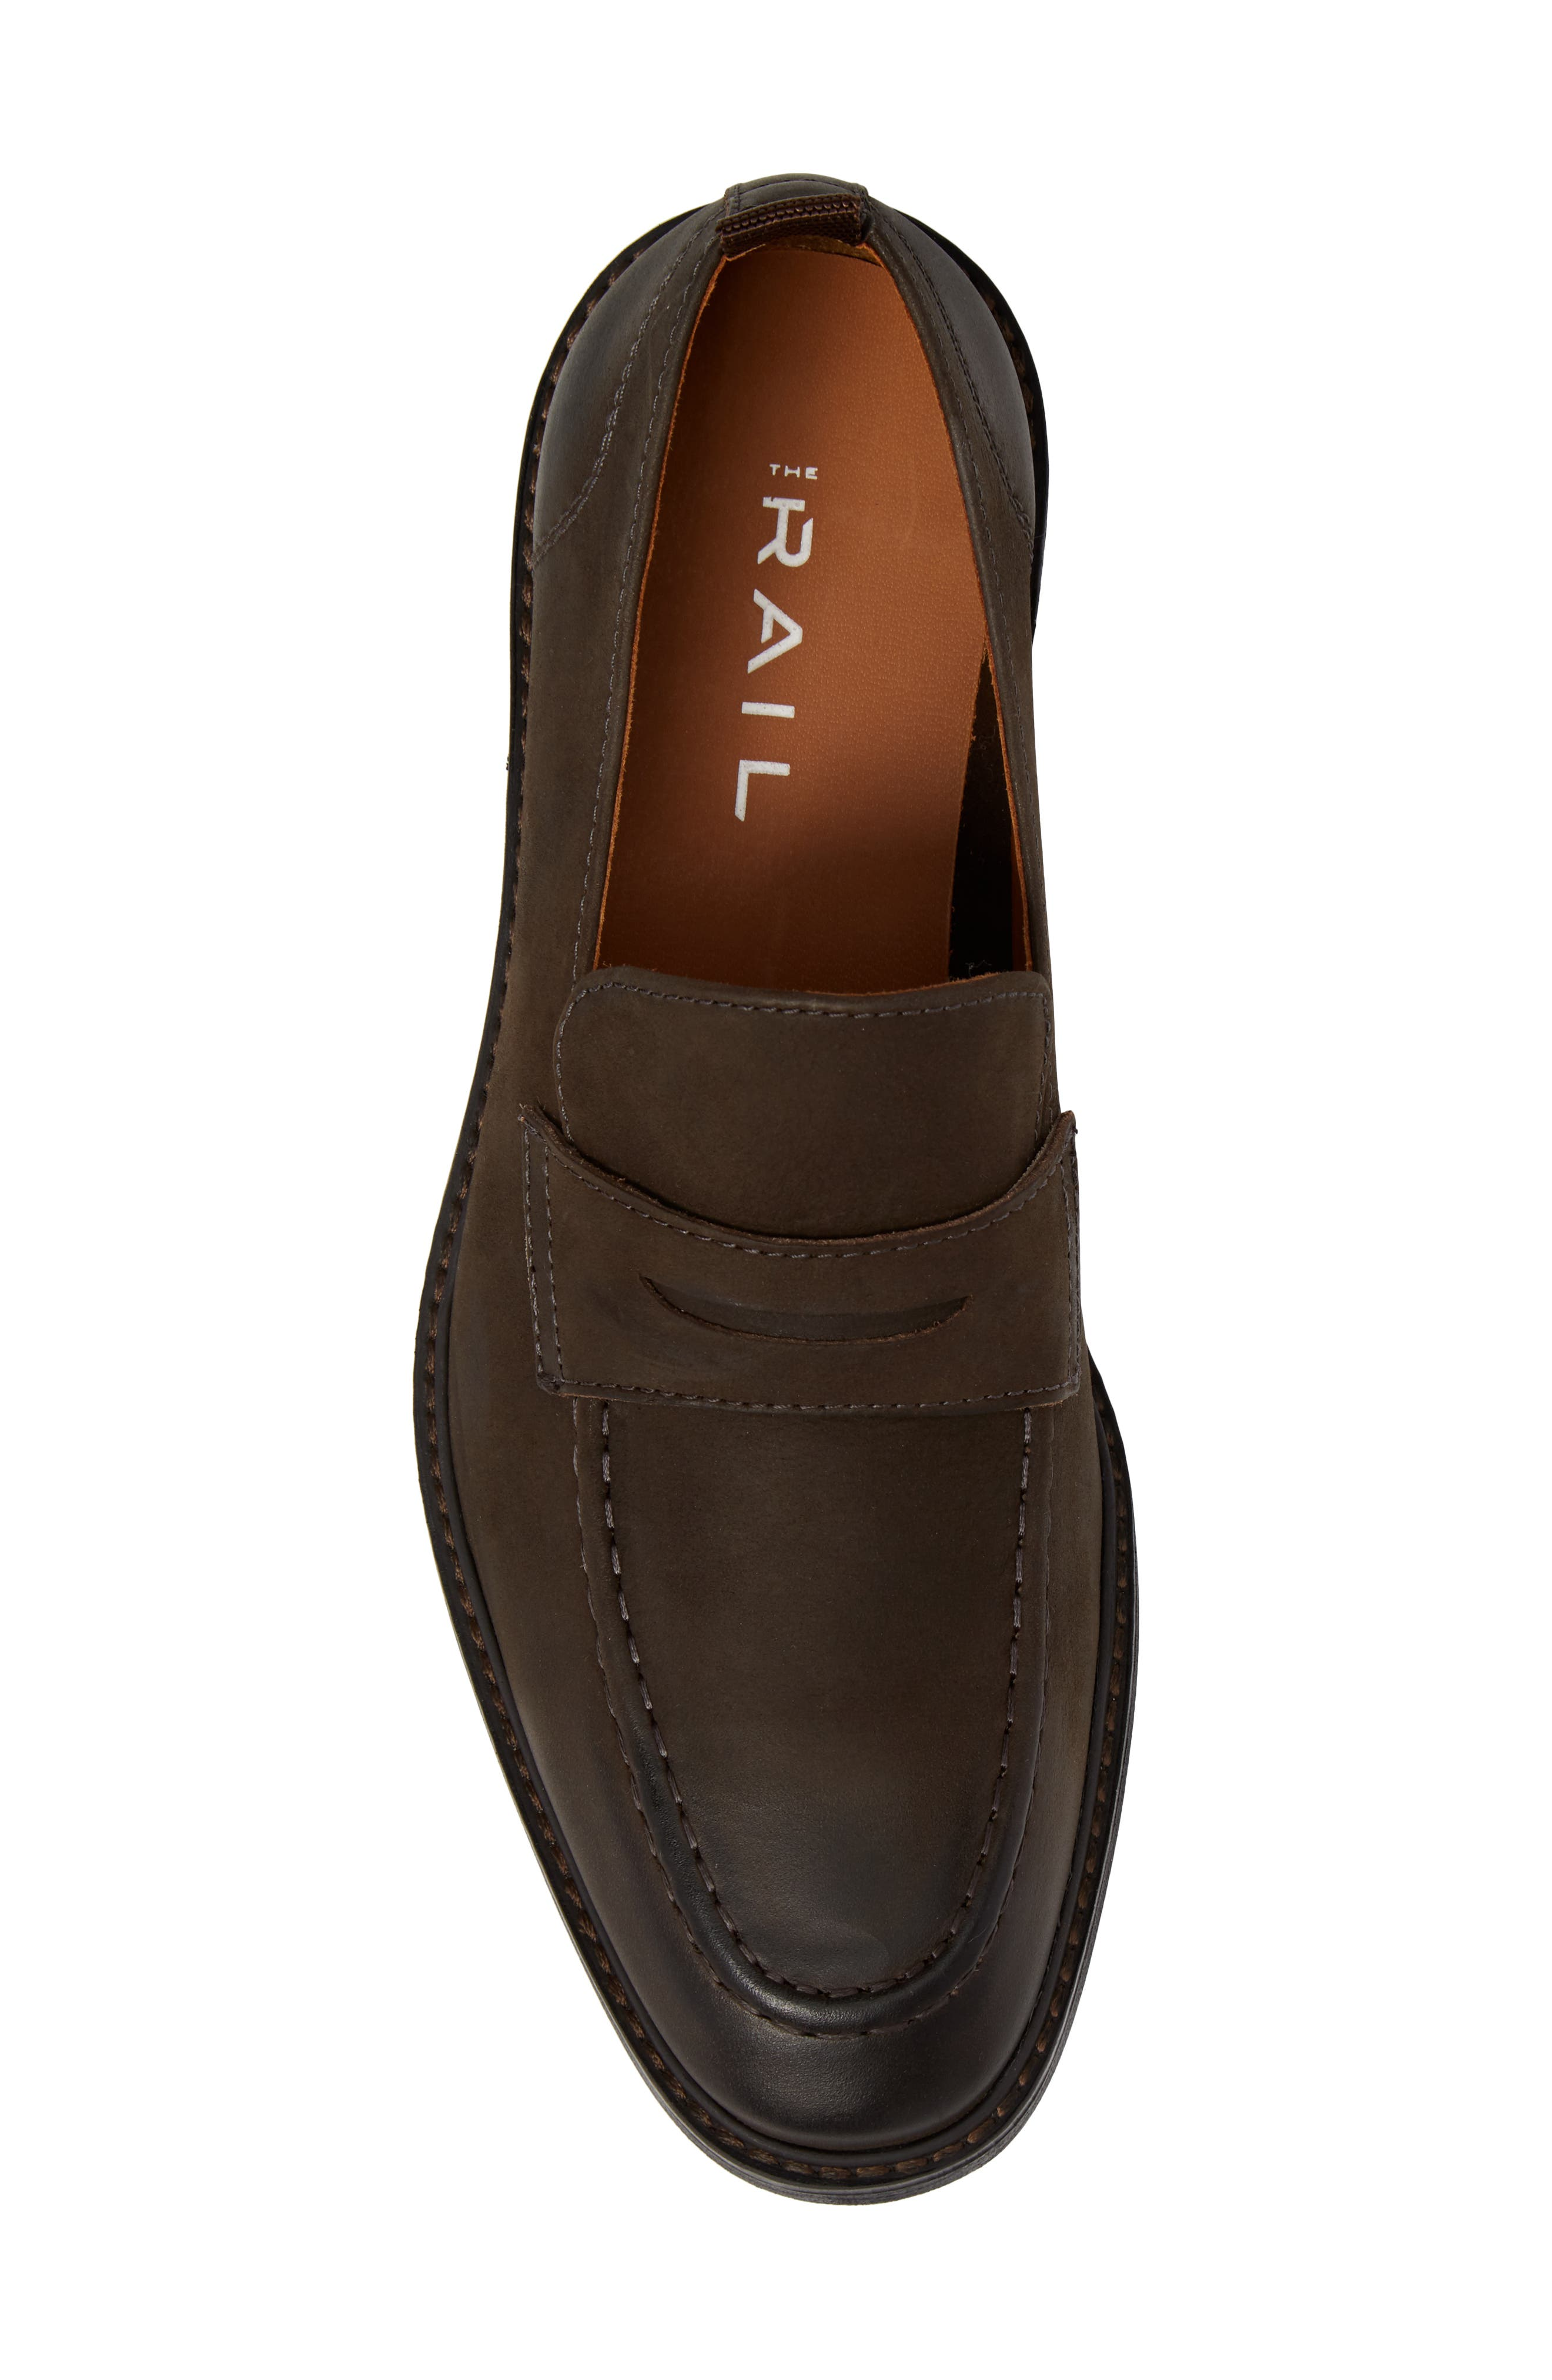 Harrington Penny Loafer,                             Alternate thumbnail 5, color,                             Chocolate Leather